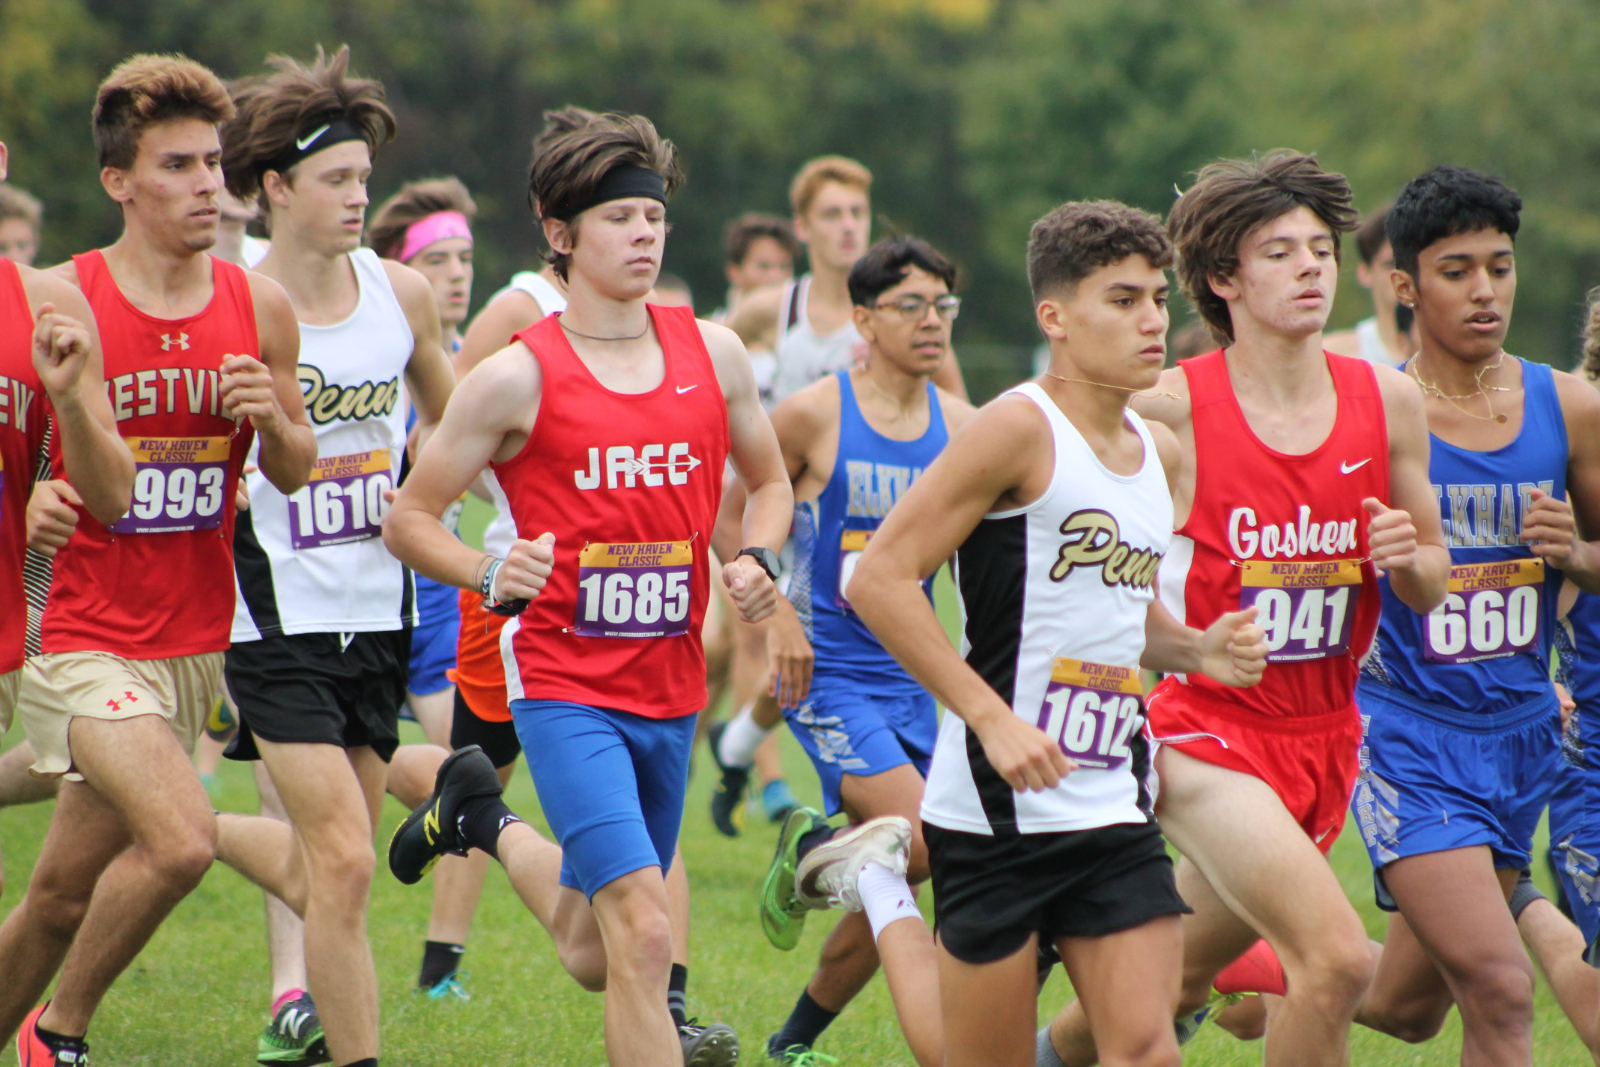 Boys Cross Country New Haven Classic (Sept 26)